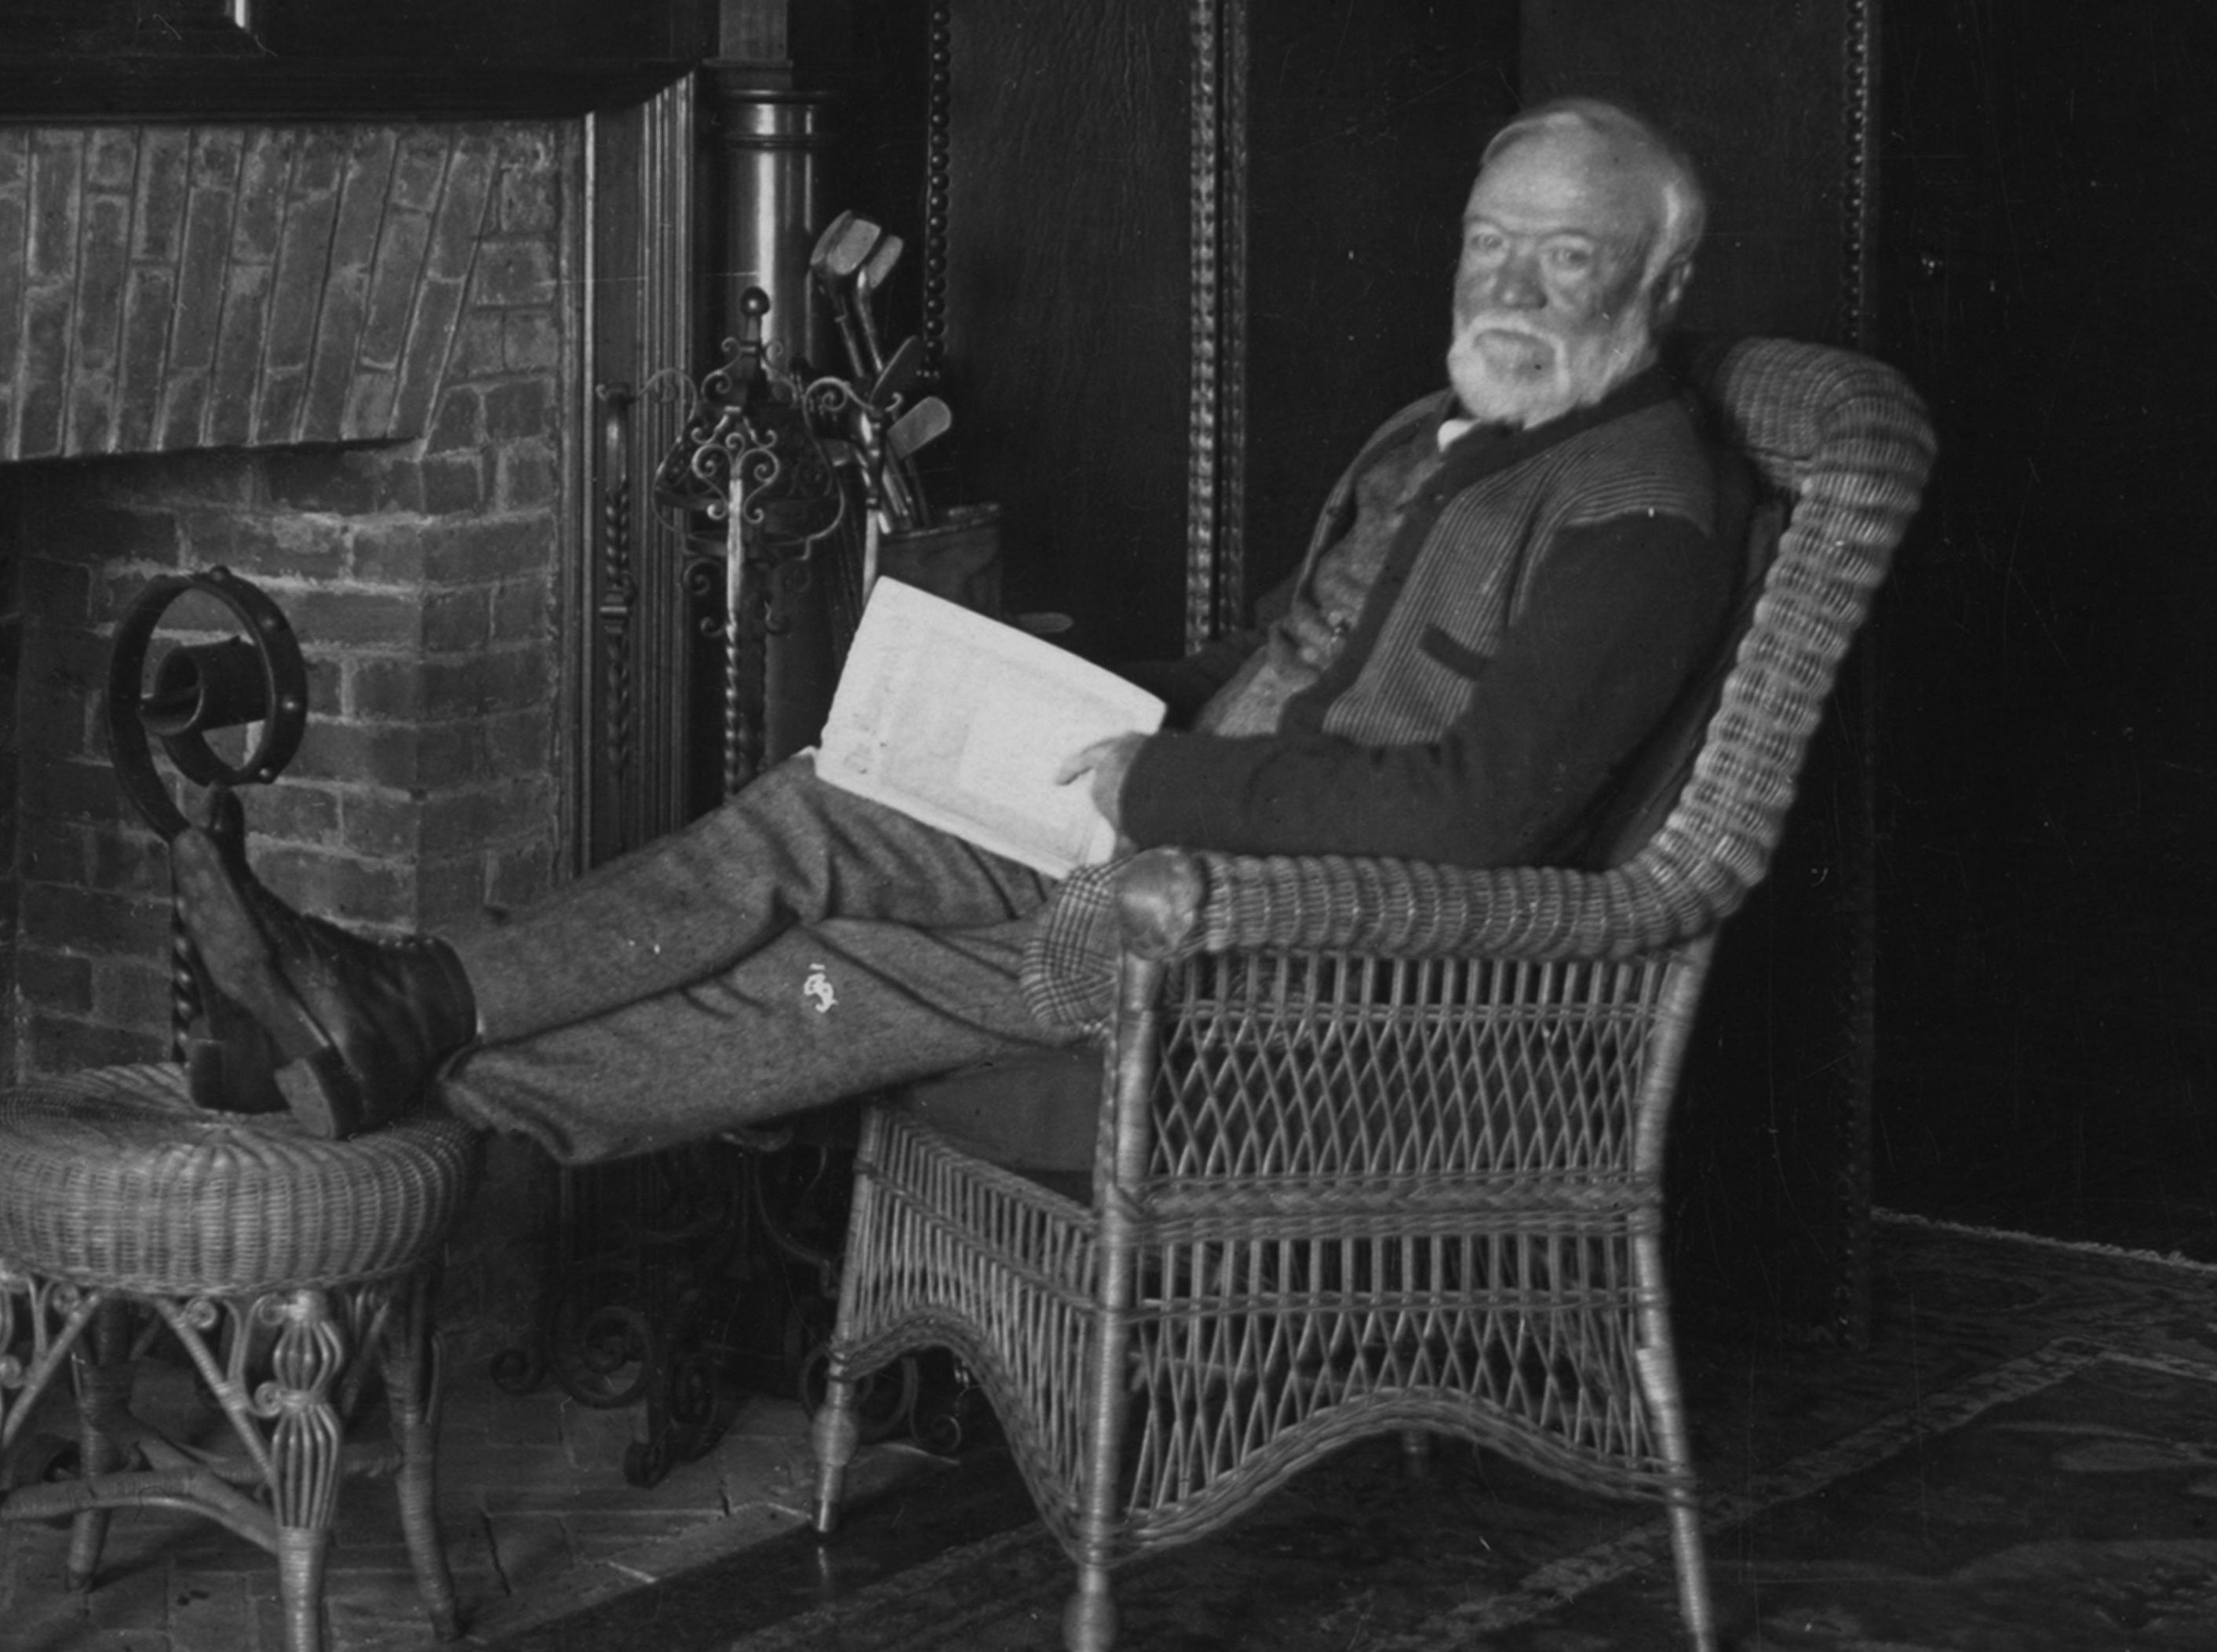 Andrew Carnegie holds an open book and sits in a rattan chair with his feet up by a fireplace as he poses for a portrait in 1913.